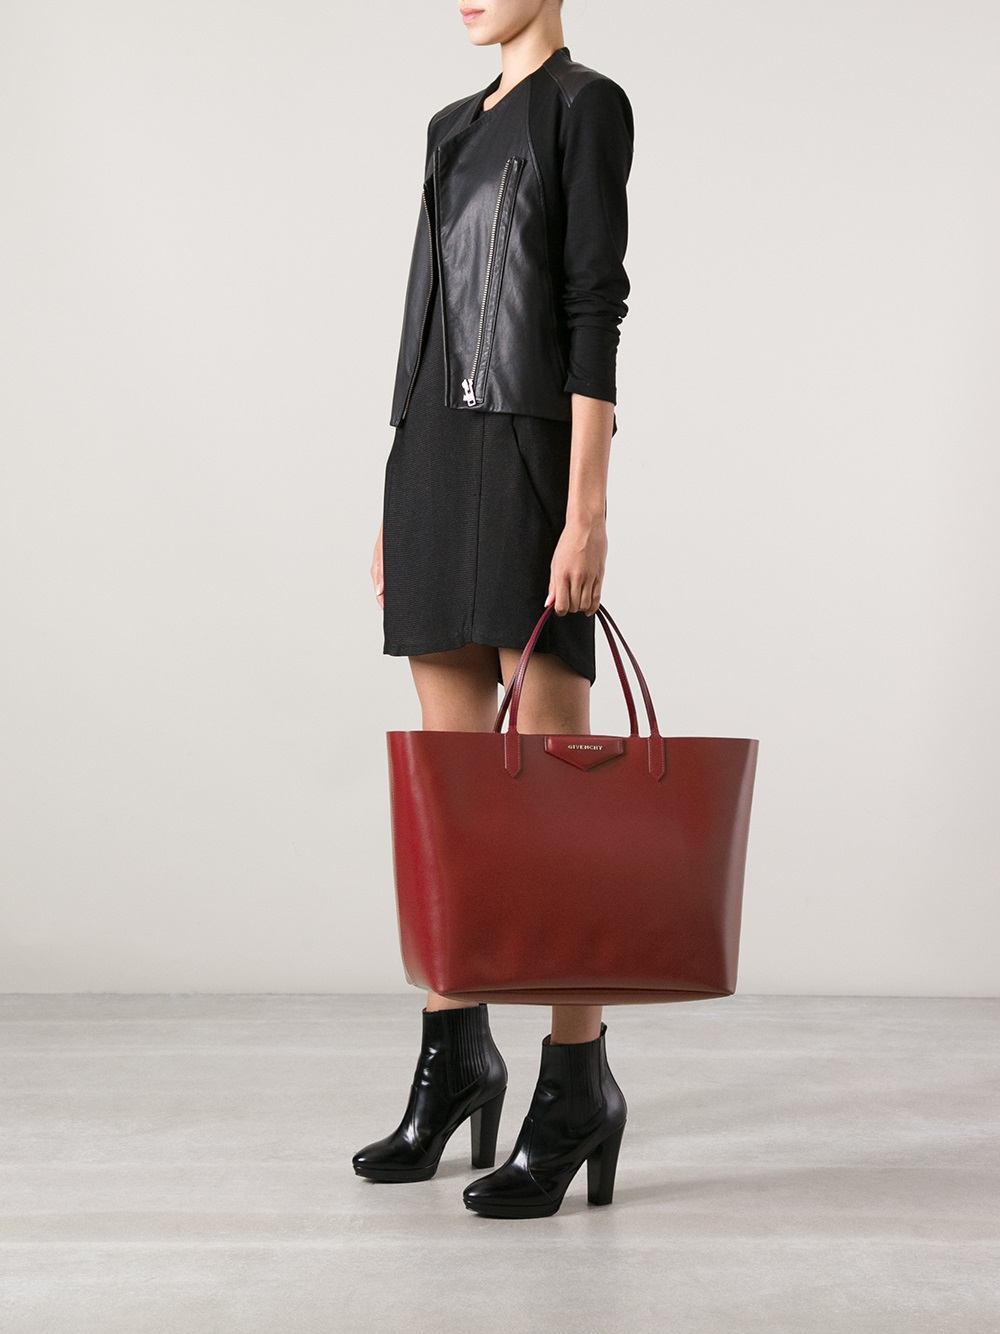 Lyst - Givenchy Antigona Large Shopping Tote in Red 2d7af6e233